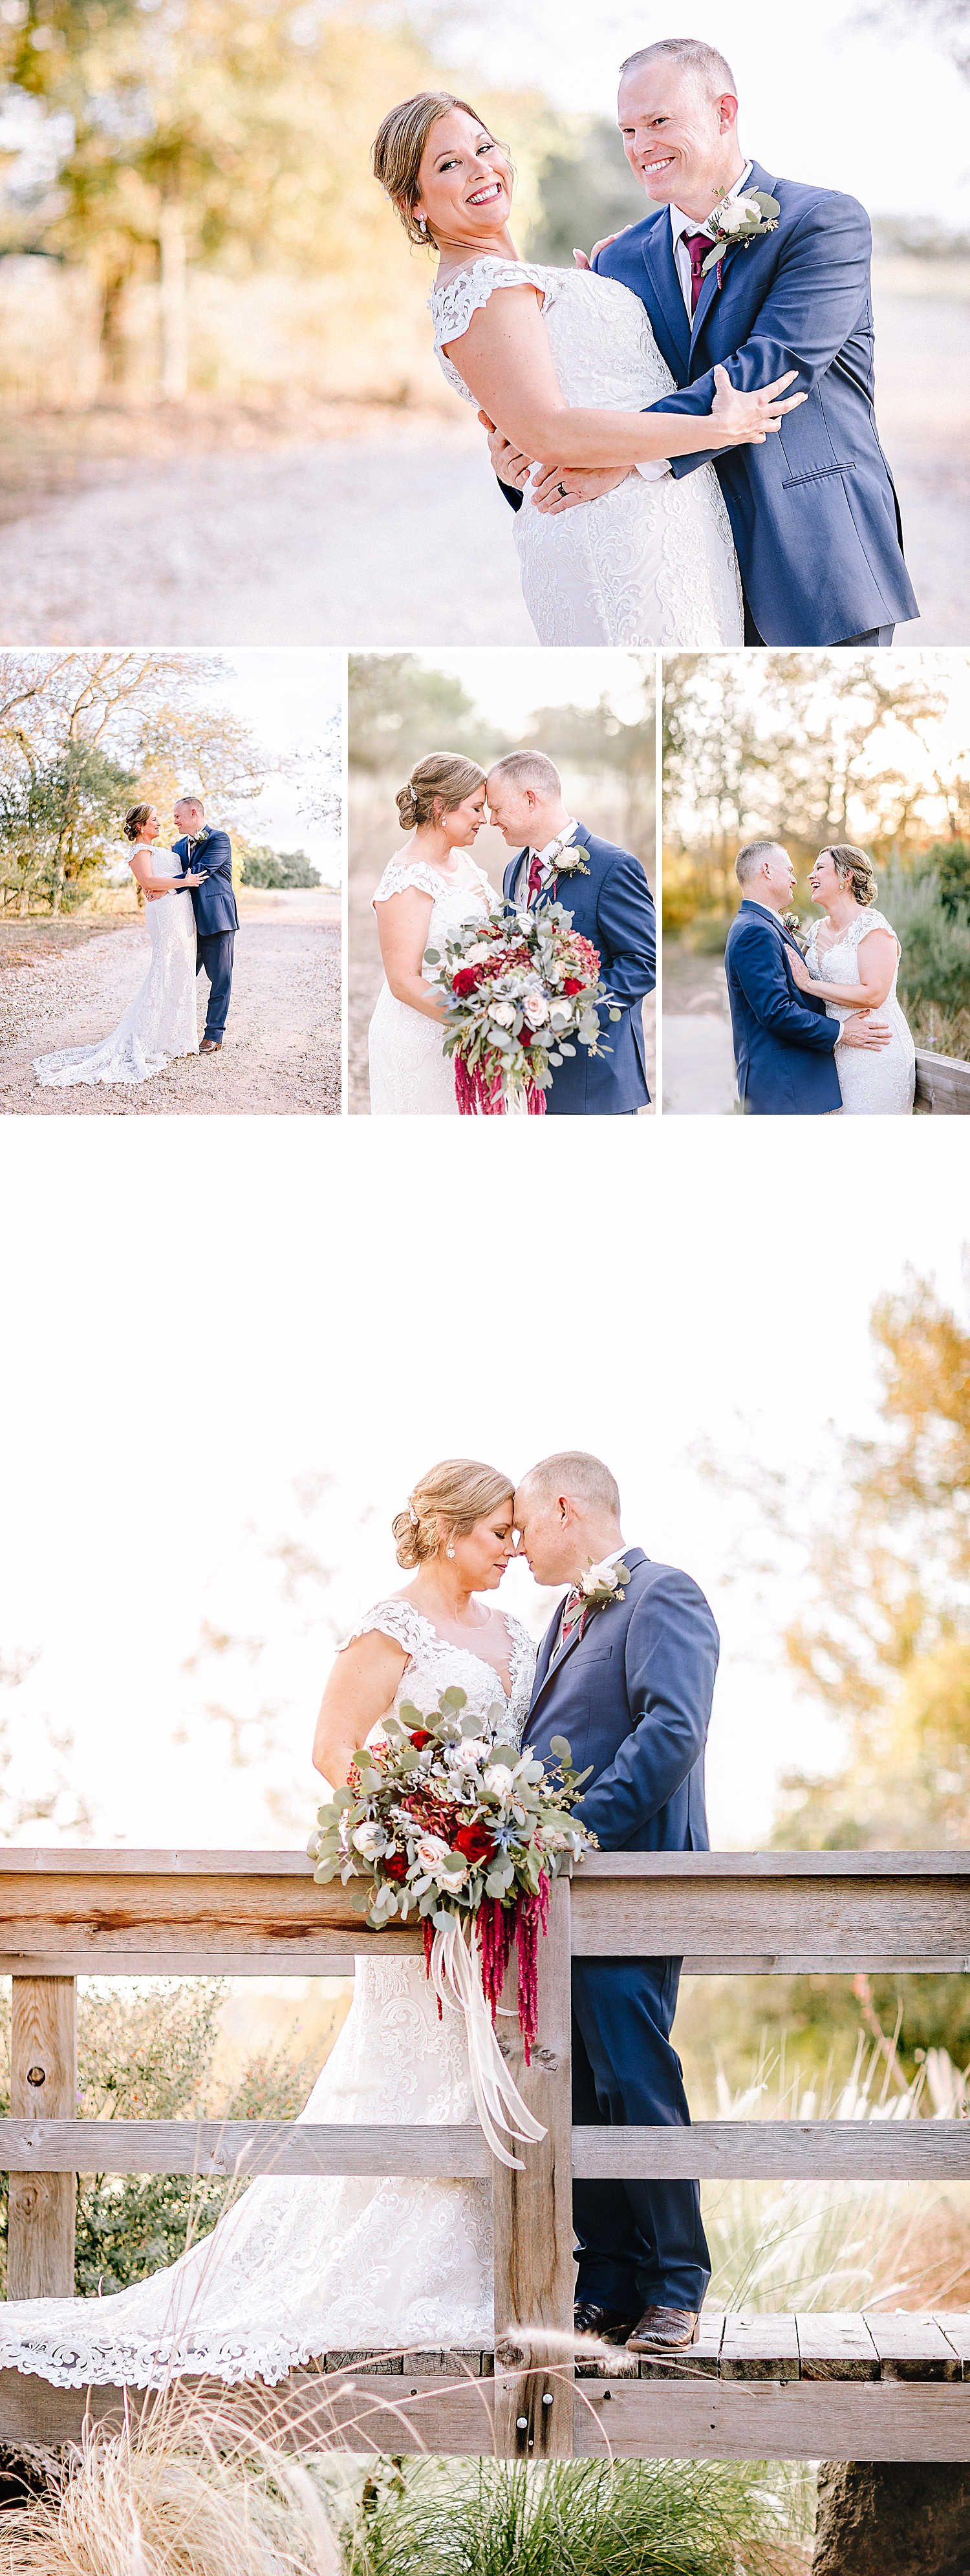 Geronimo-Oaks-Wedding-Venue-Seguin-Texas-Elegant-Navy-Burgundy-Wedding-Carly-Barton-Photography_0057.jpg